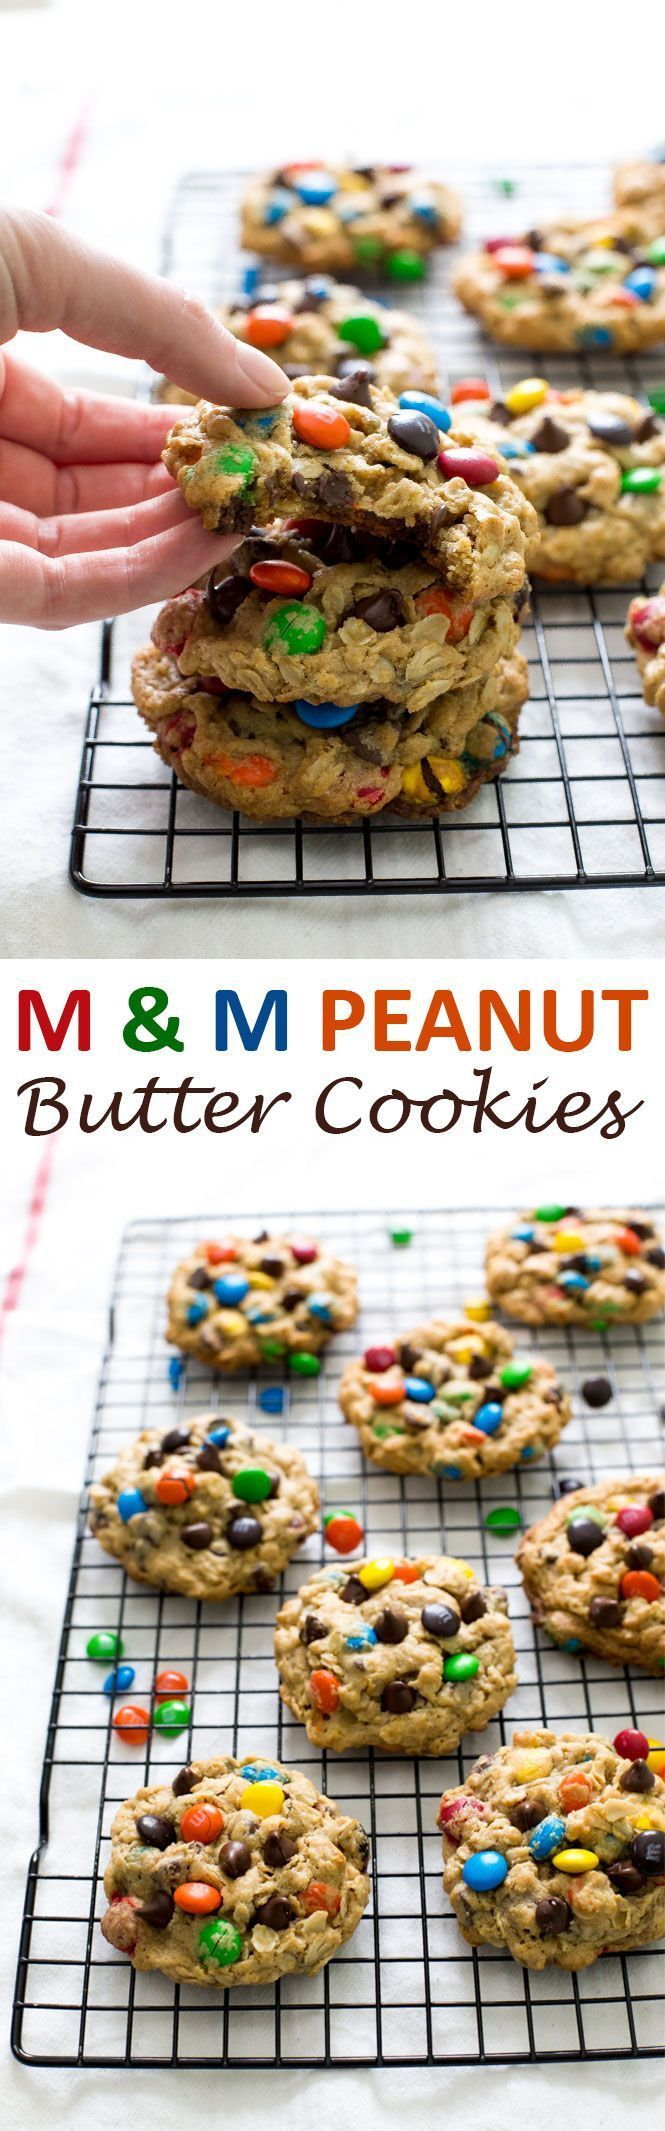 Thick and Chewy Monster M & M Cookies loaded with chocolate chips, M & Ms, peanut butter, and oats! They take only 20 minutes to make! | chefsavvy.com #recipe #m&m #peanut #butter #cookies #dessert